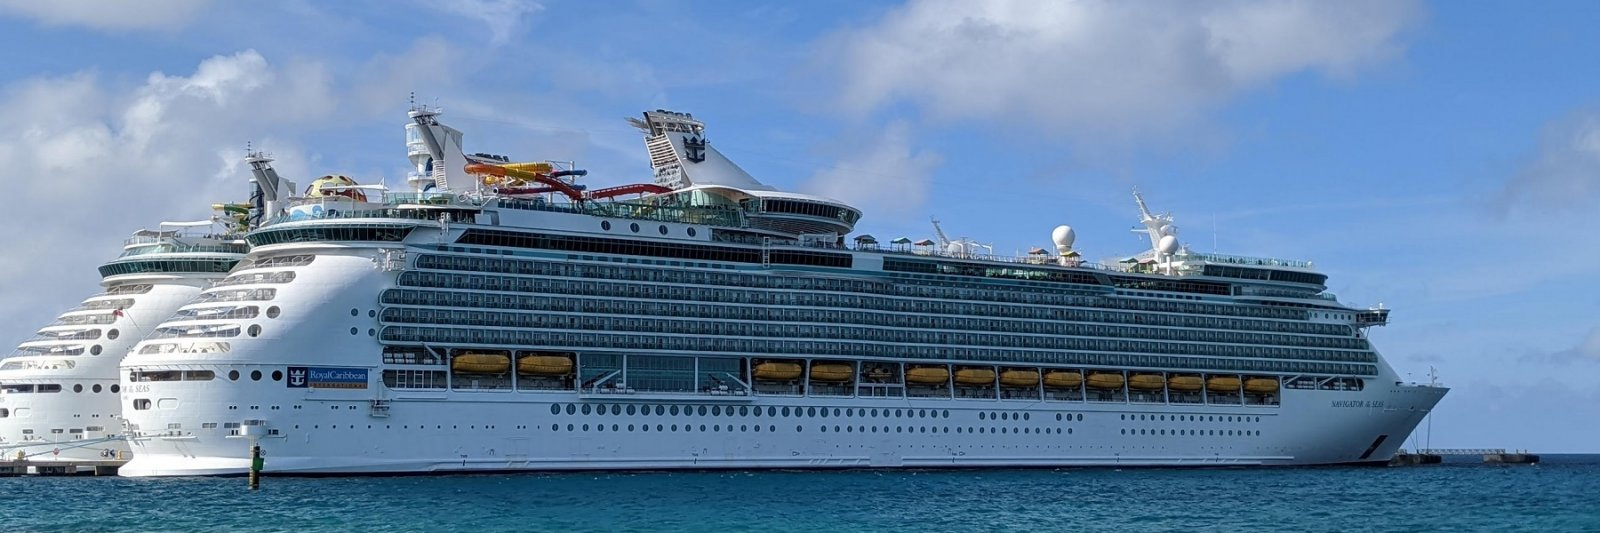 cruise ship in the water